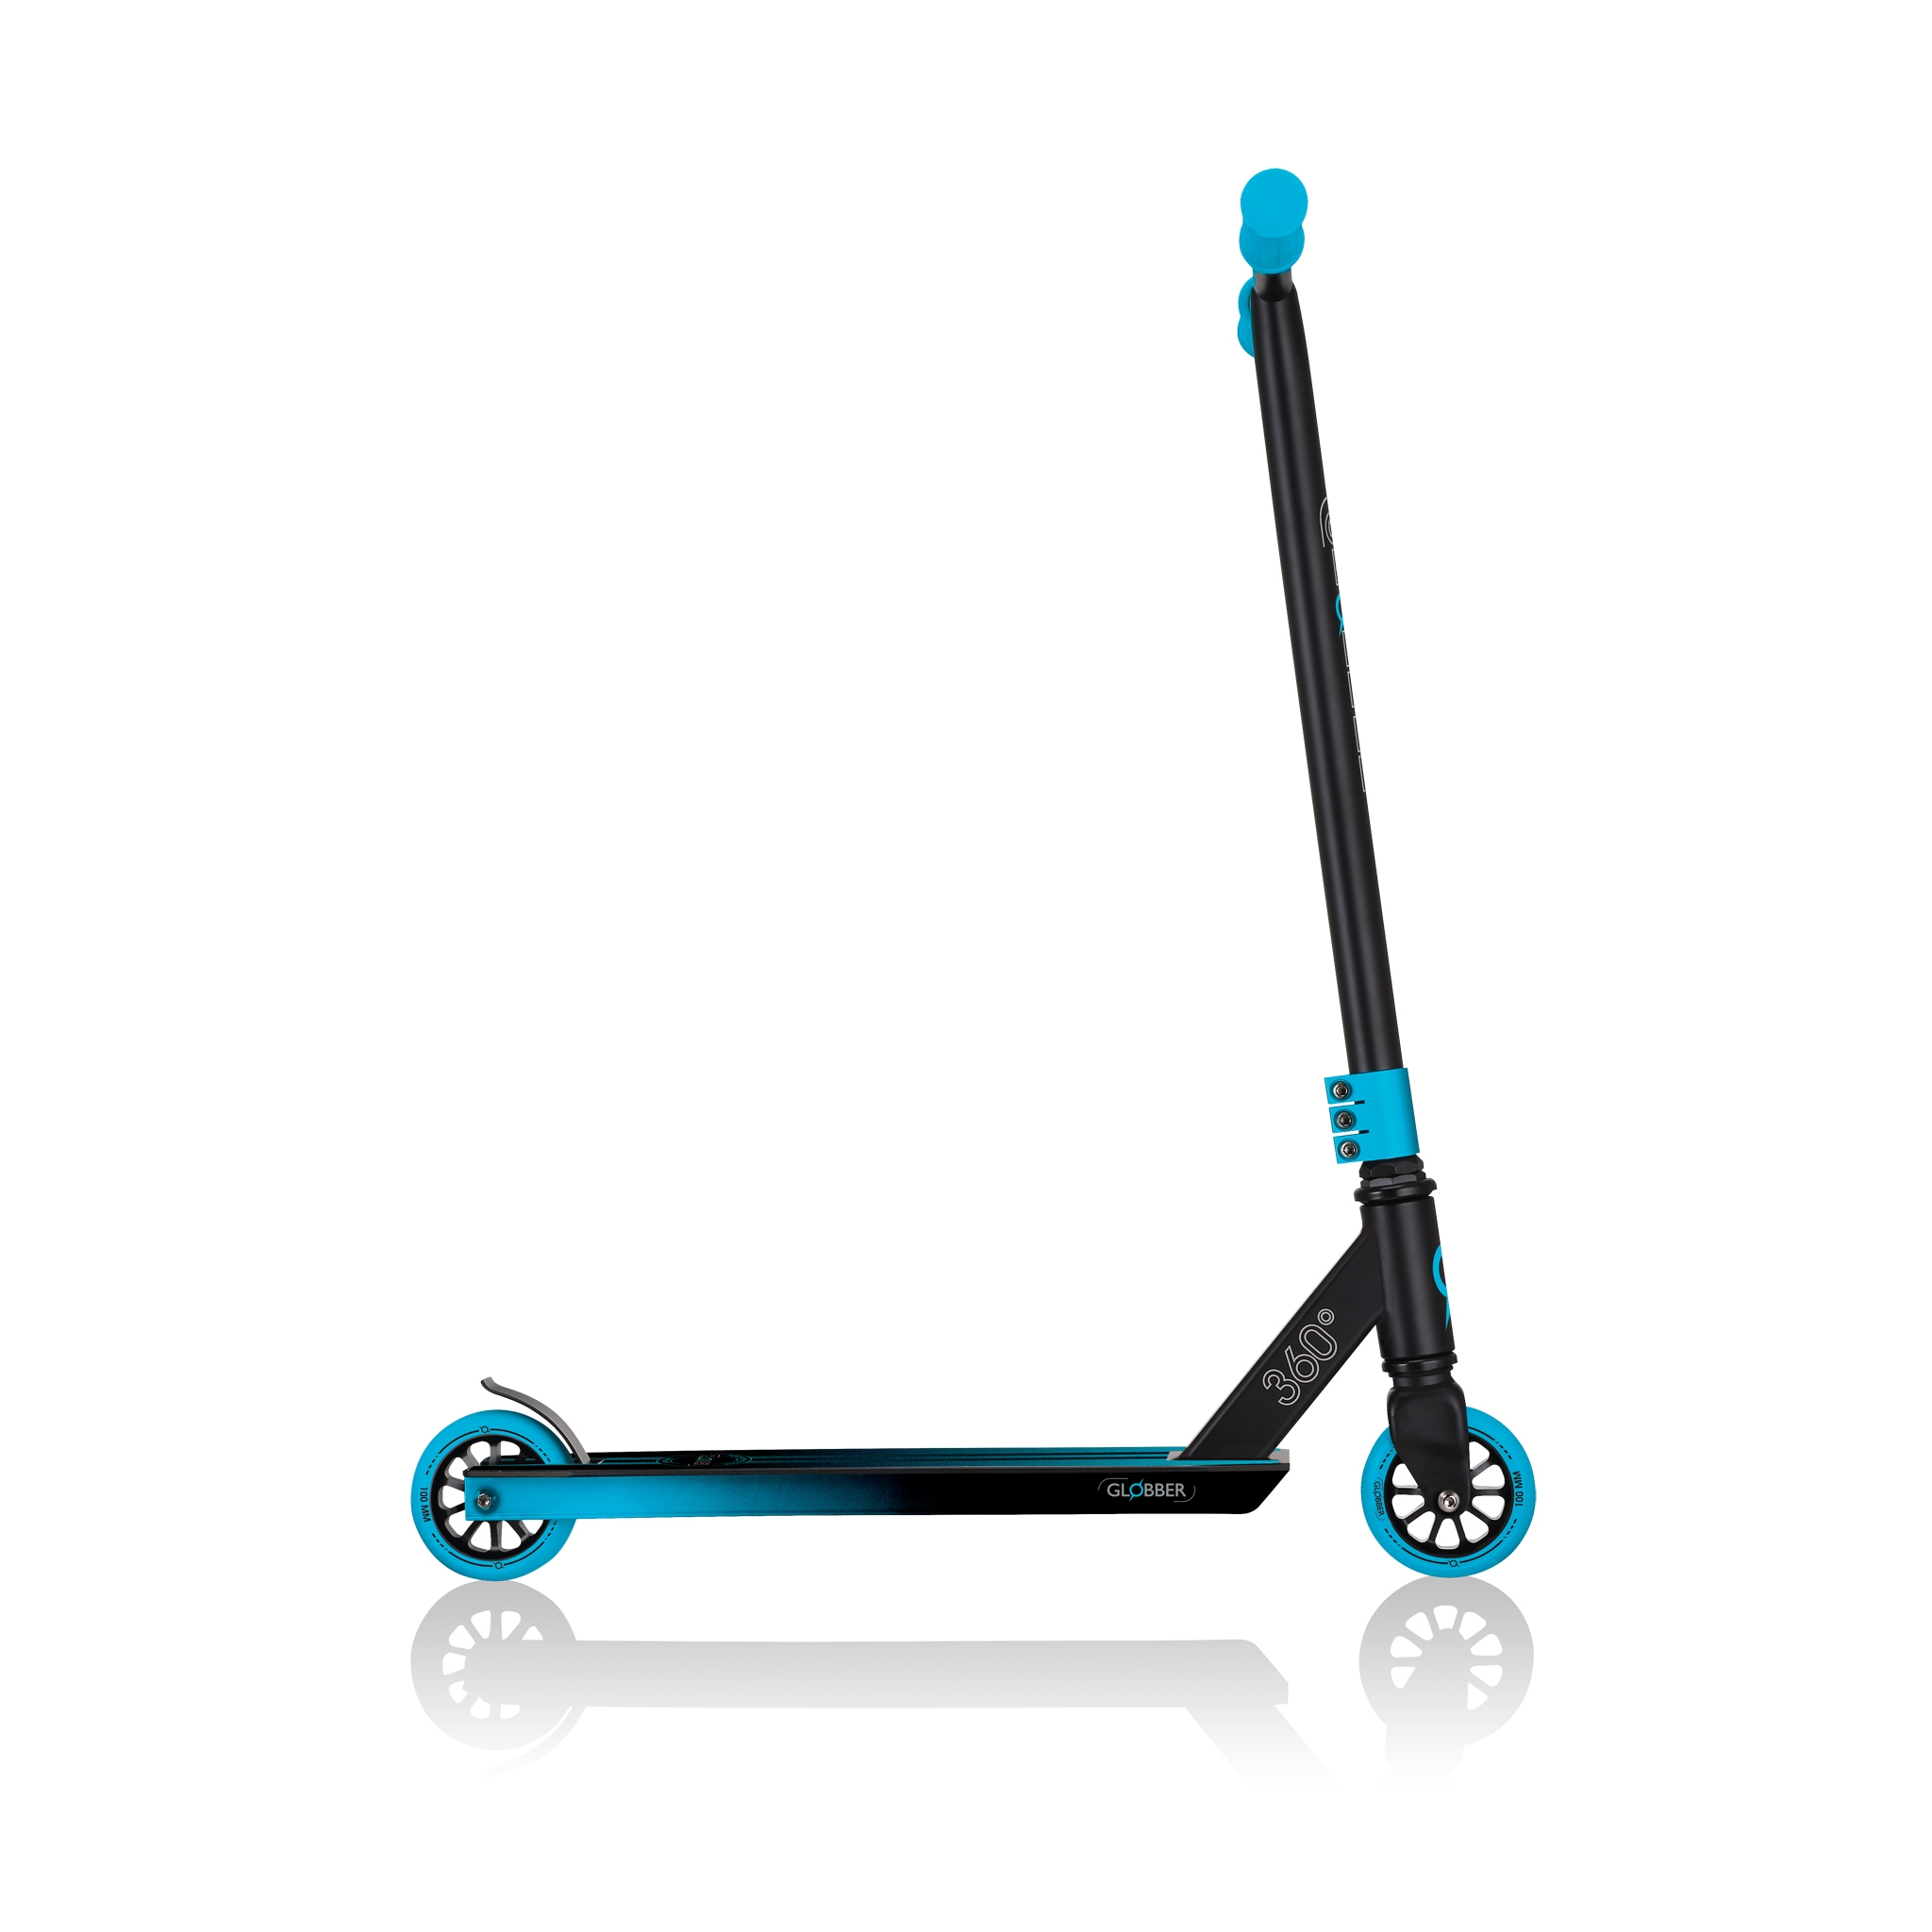 stunt-scooter-with-high-quality-wheels-Globber-GS360 4